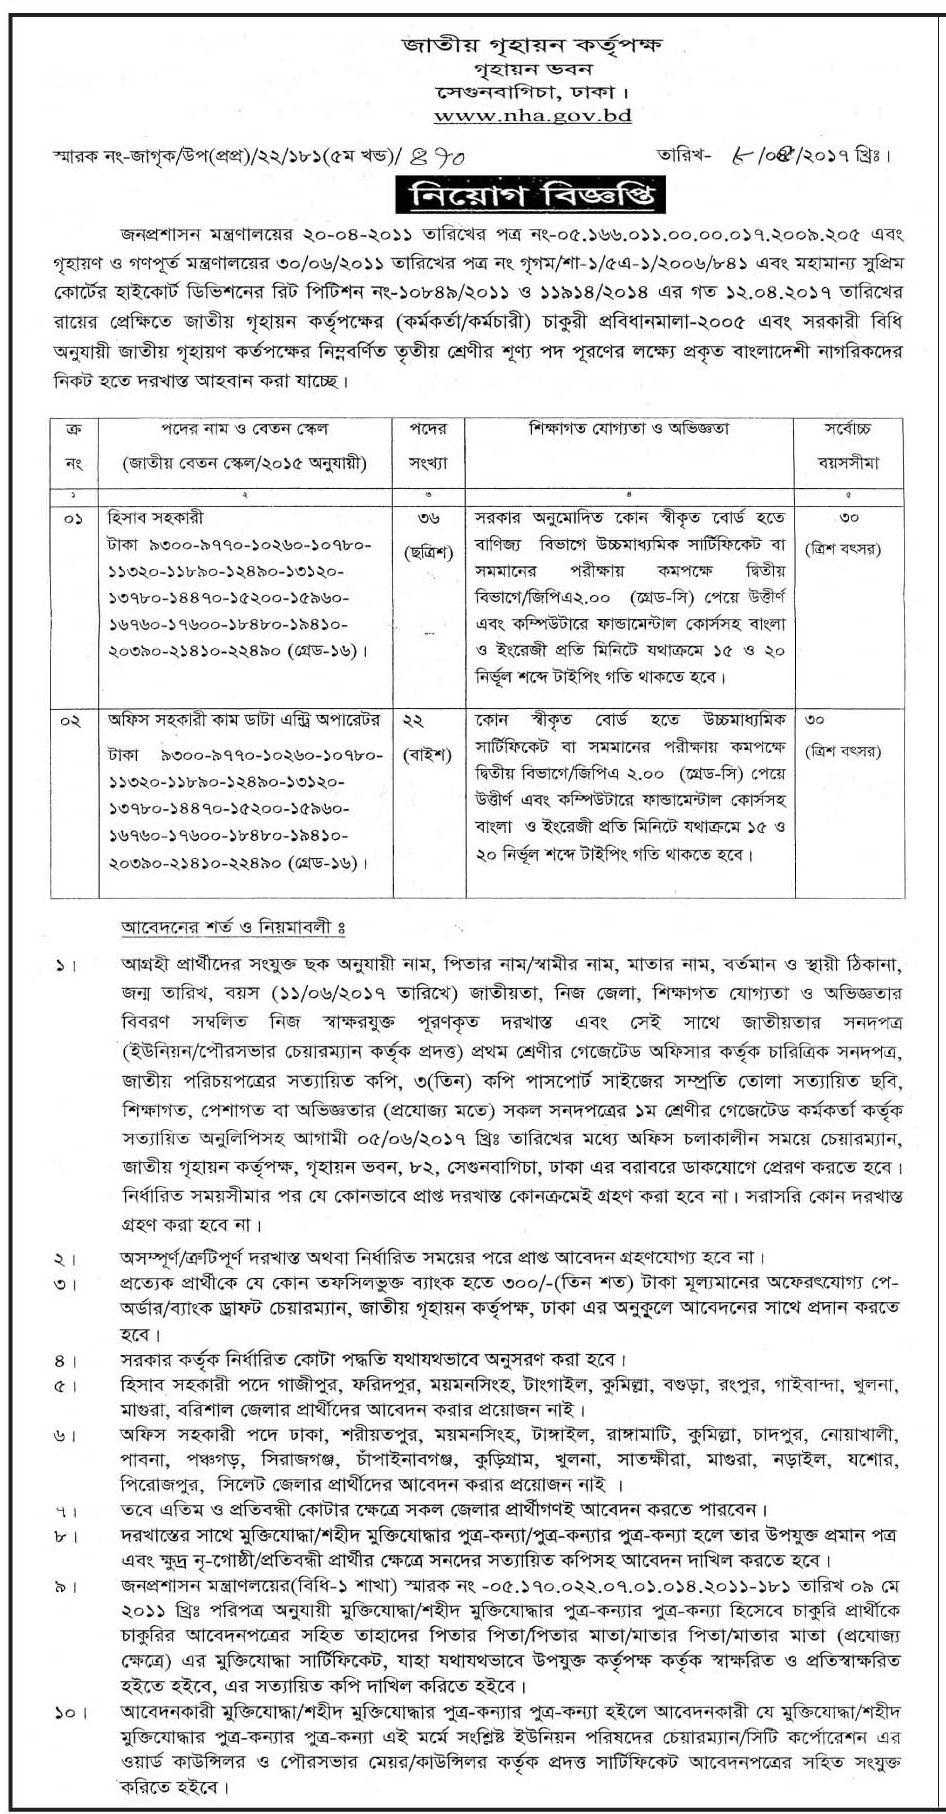 National Housing Authority Job Circular 2017